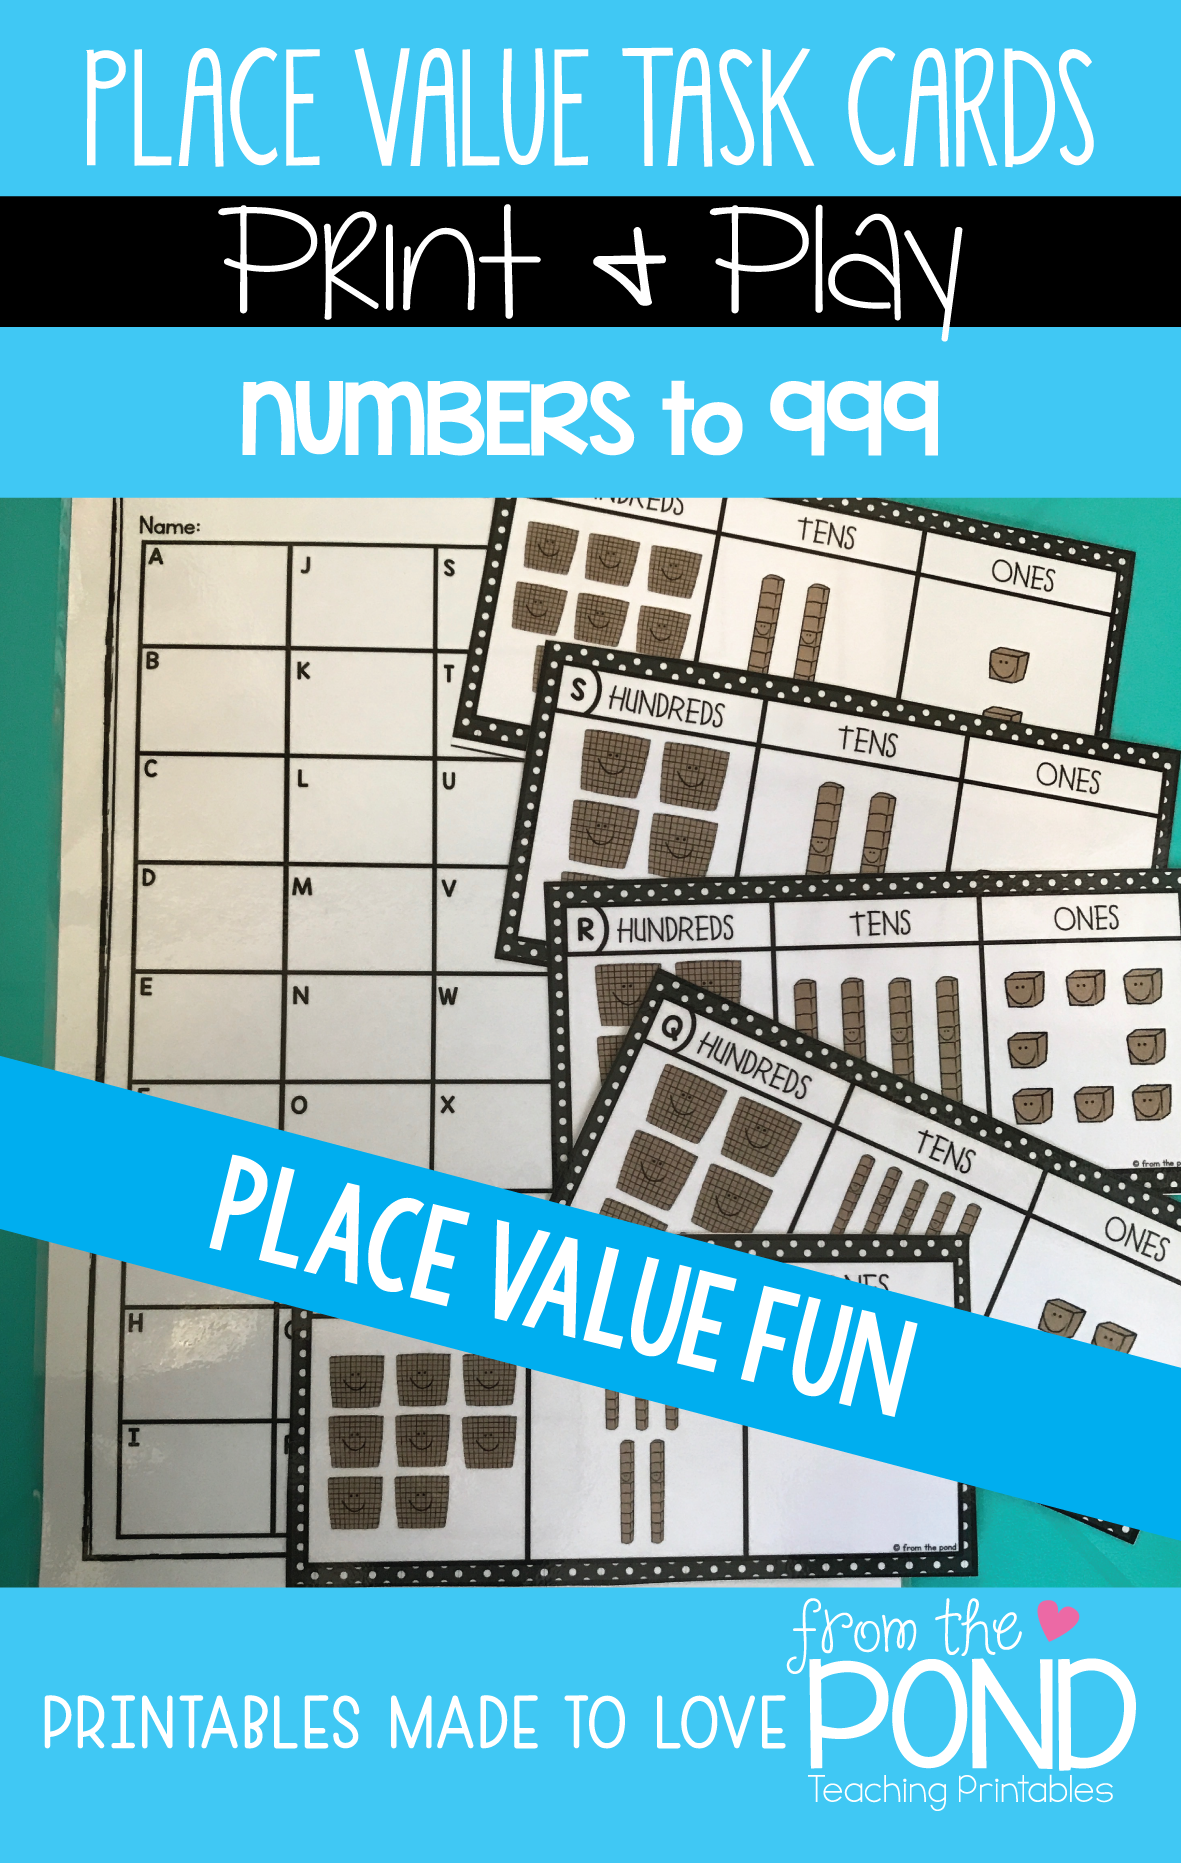 Place Value Task Cards | Math activities, Activities and Math